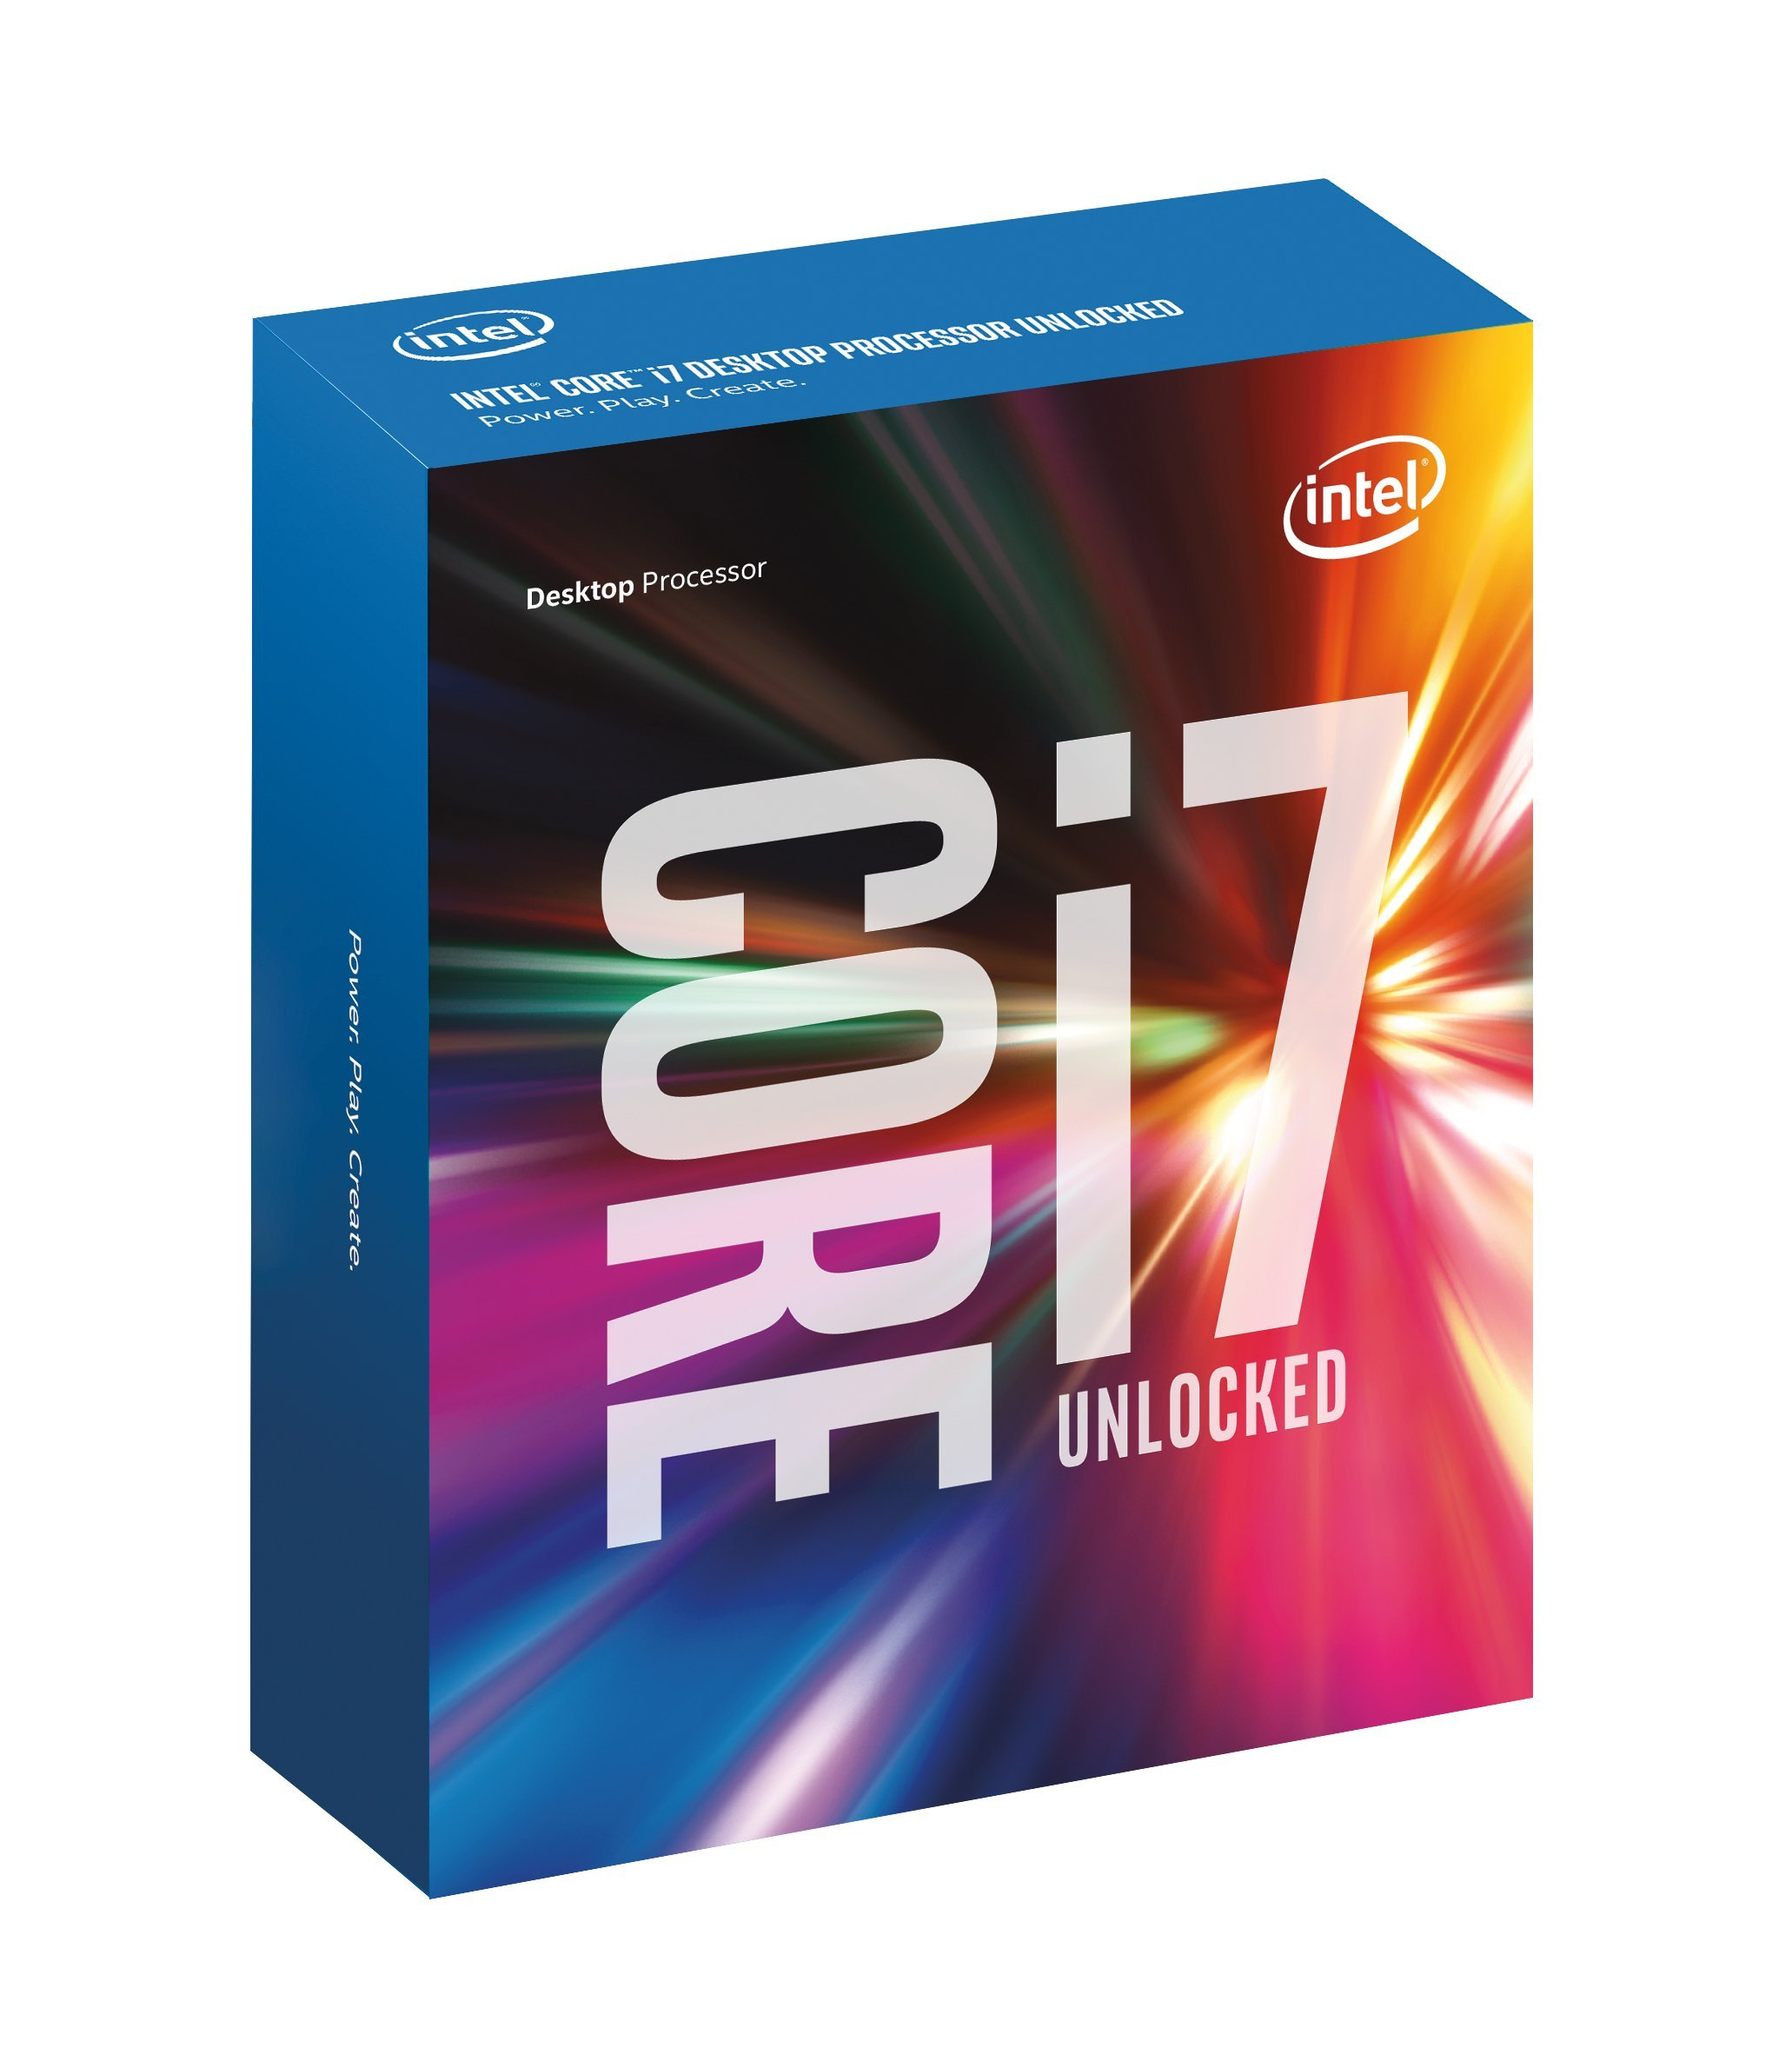 Intel Core i7 6700K 4.00 GHz Unlocked Quad Core Skylake Desktop Processor, Socket LGA 1151 [BX80662I76700K] by Intel